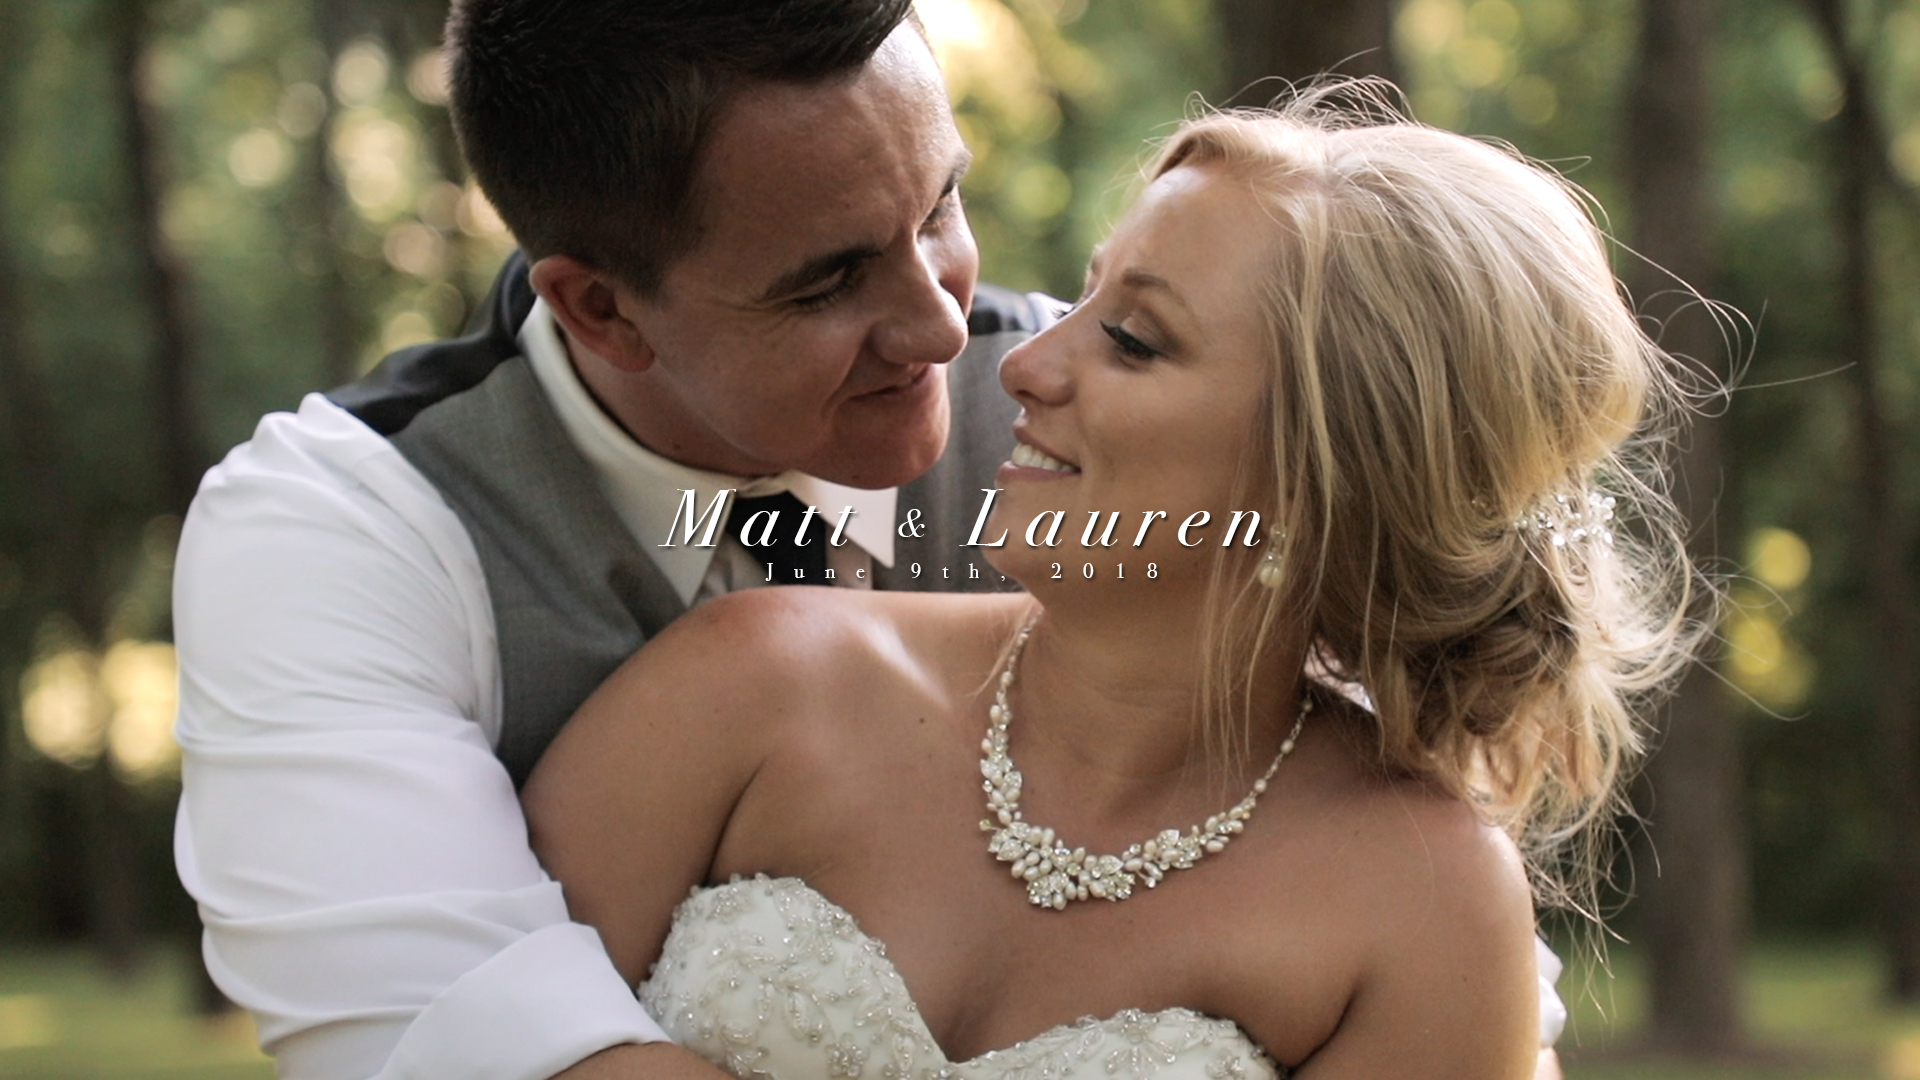 Matt + Lauren | Saint Clair, Missouri | Lost Hill Lake Events, Saint Clair